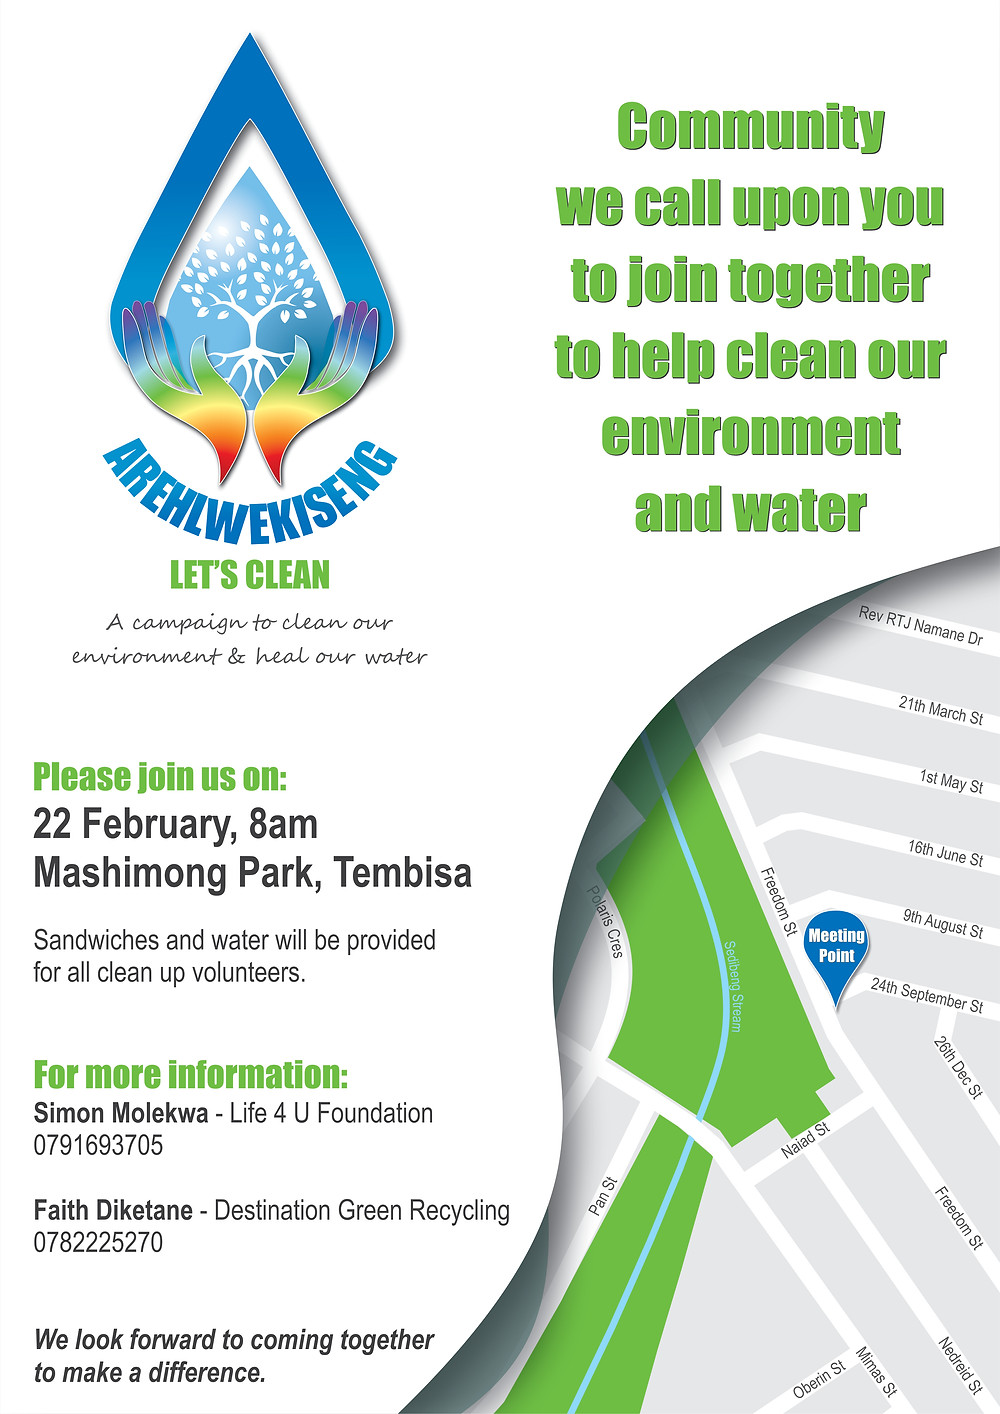 Launching the AREHLWEKISENG Let's Clean Campiagn in Tembisa